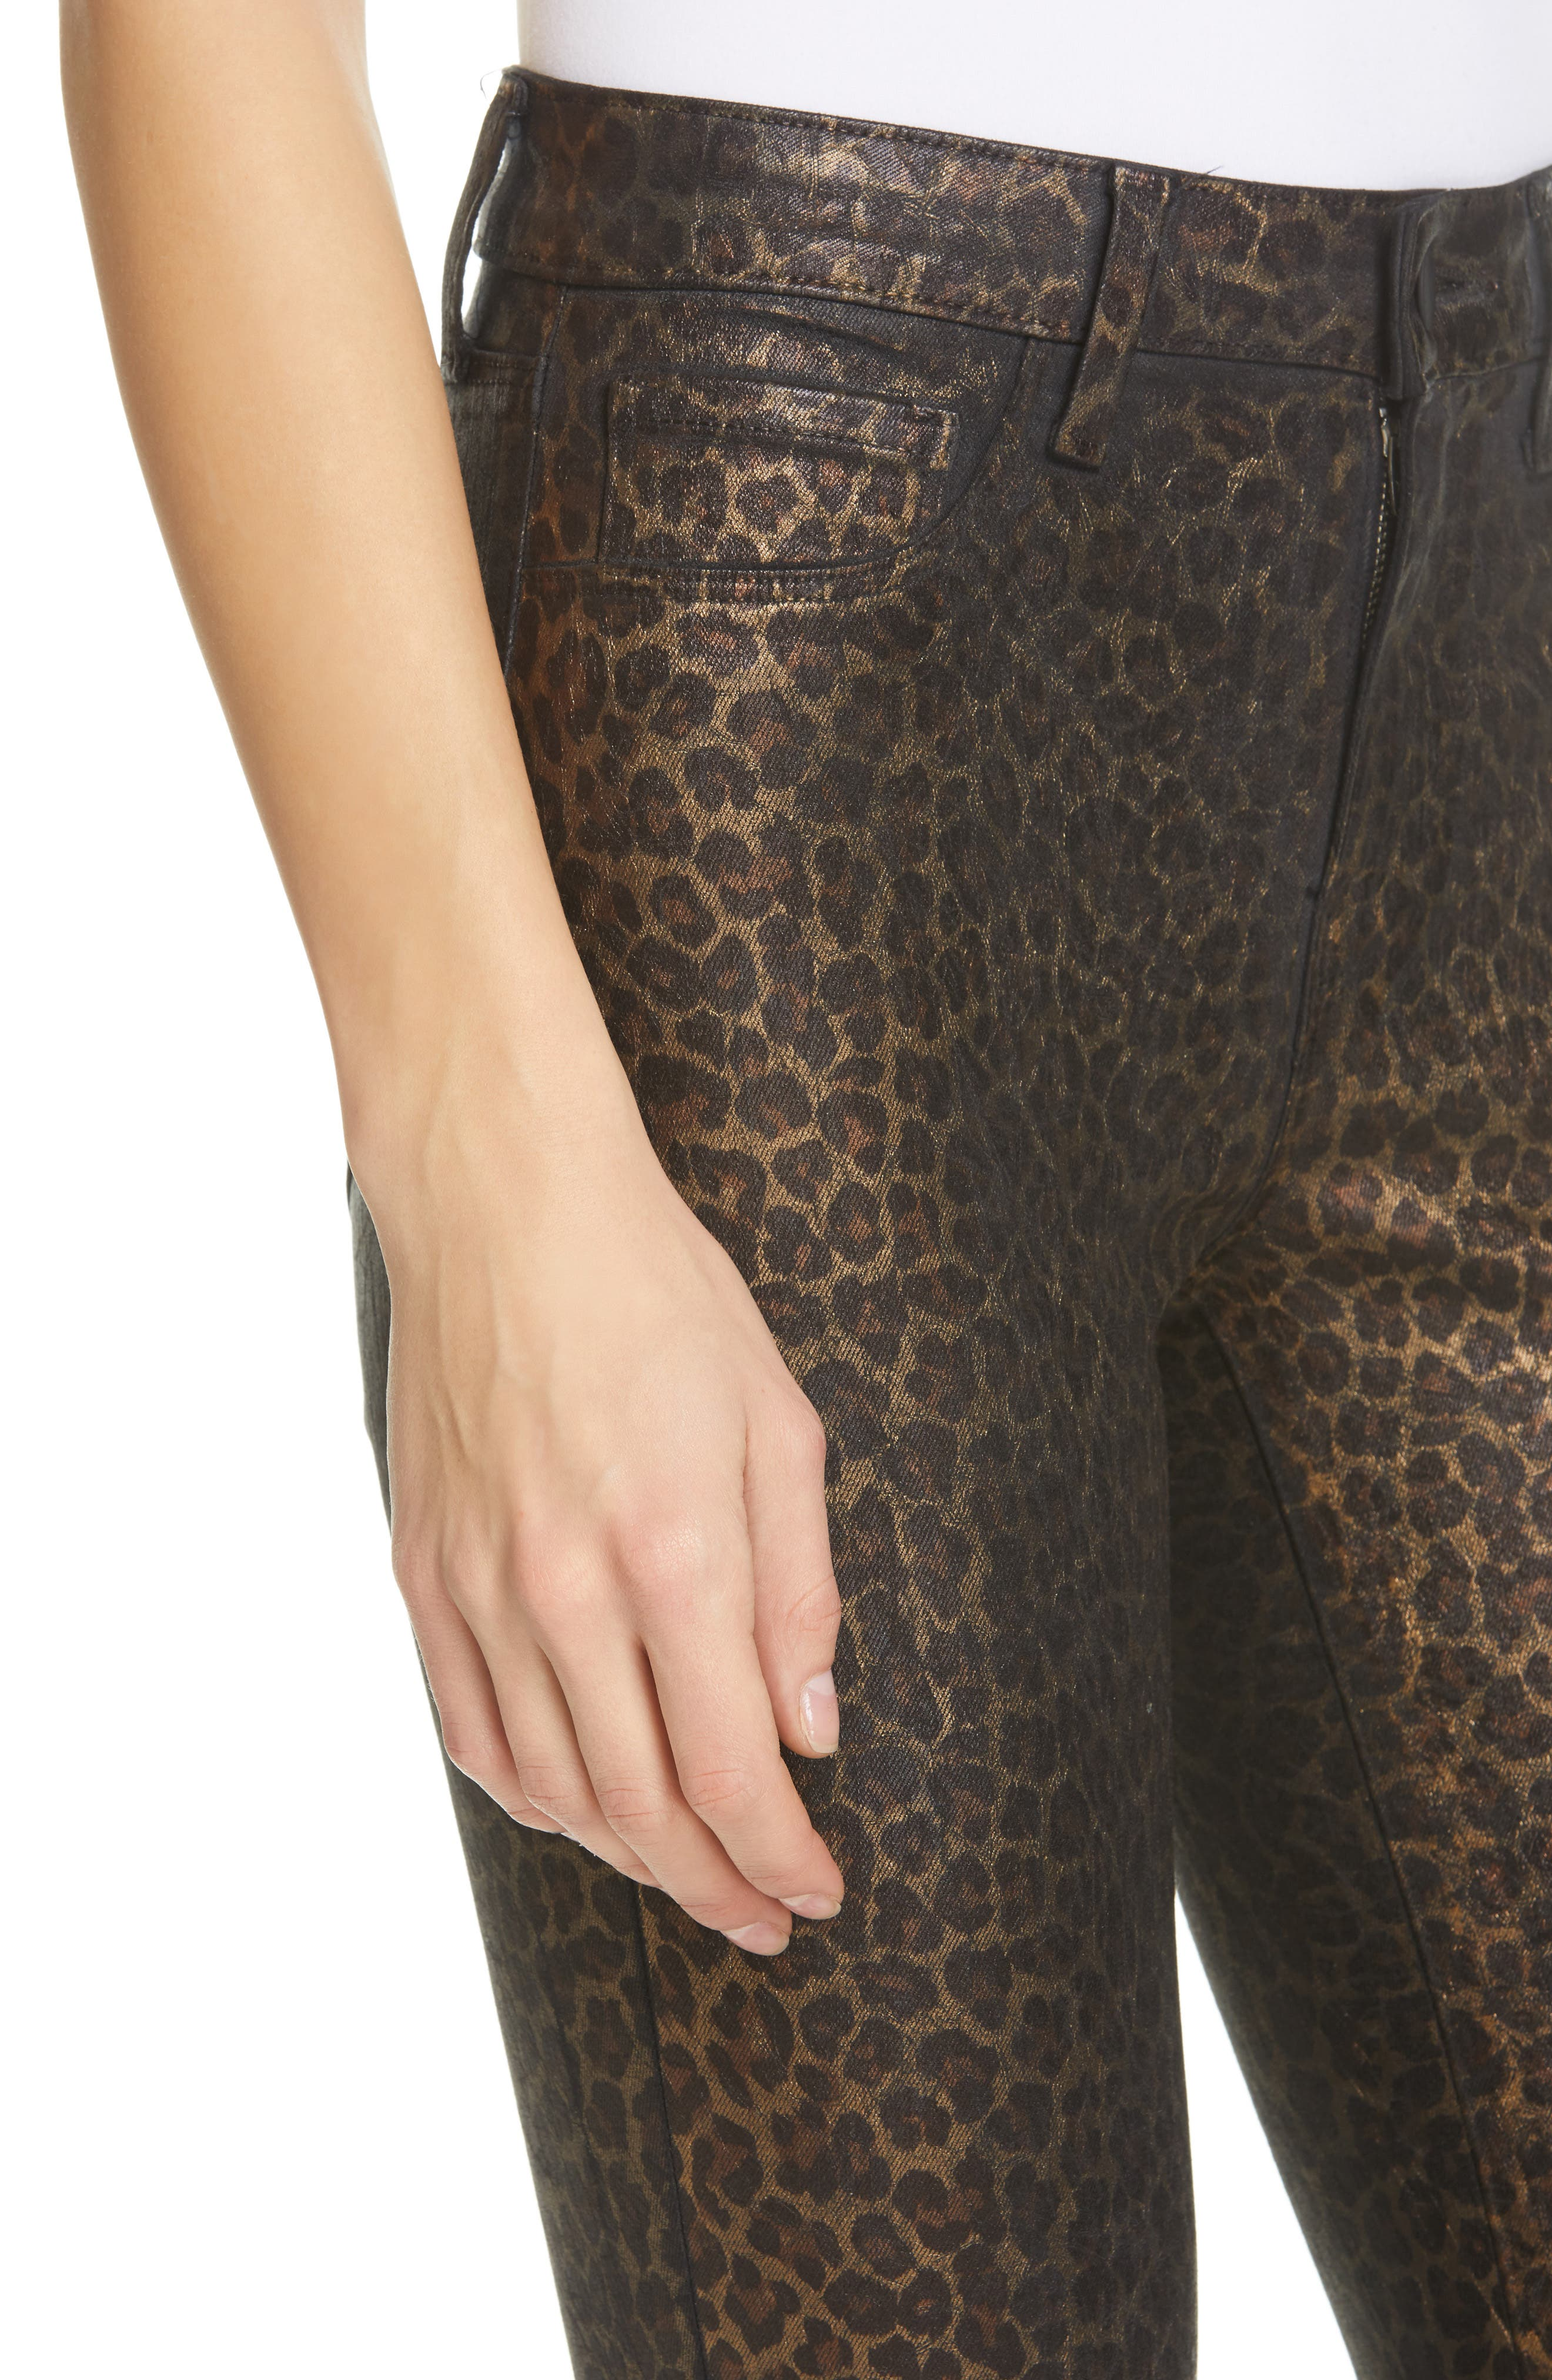 L'AGENCE, Margot Metallic Coated Crop Skinny Jeans, Alternate thumbnail 5, color, BLACK CHEETAH CRACKLE FOIL